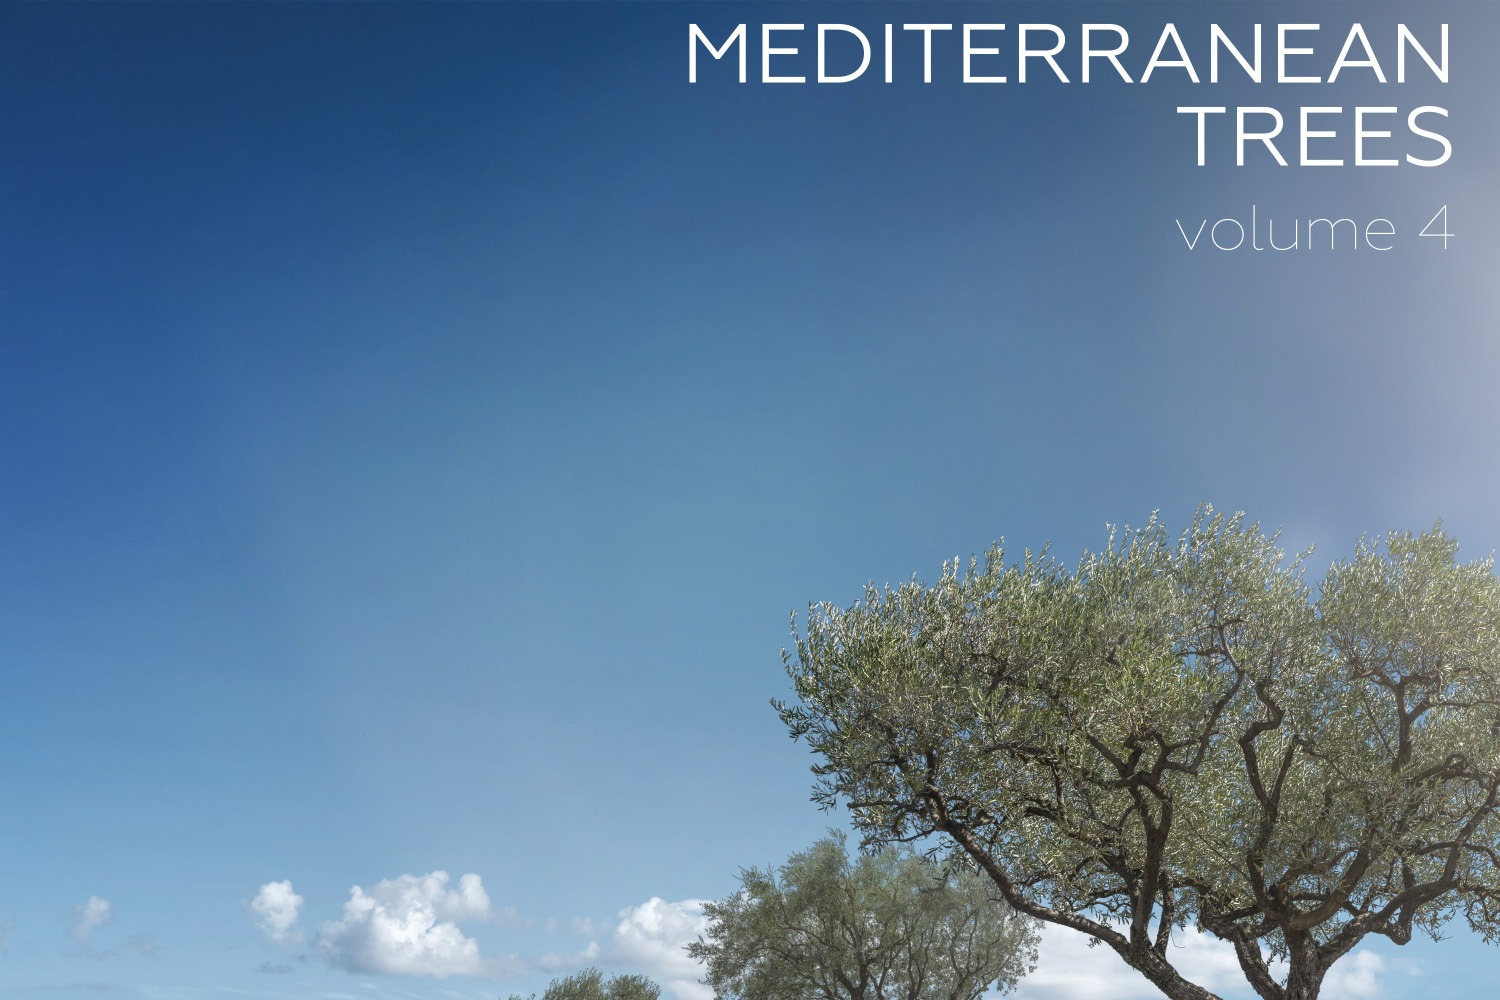 MEDITERRANEAN TREES Volume 04